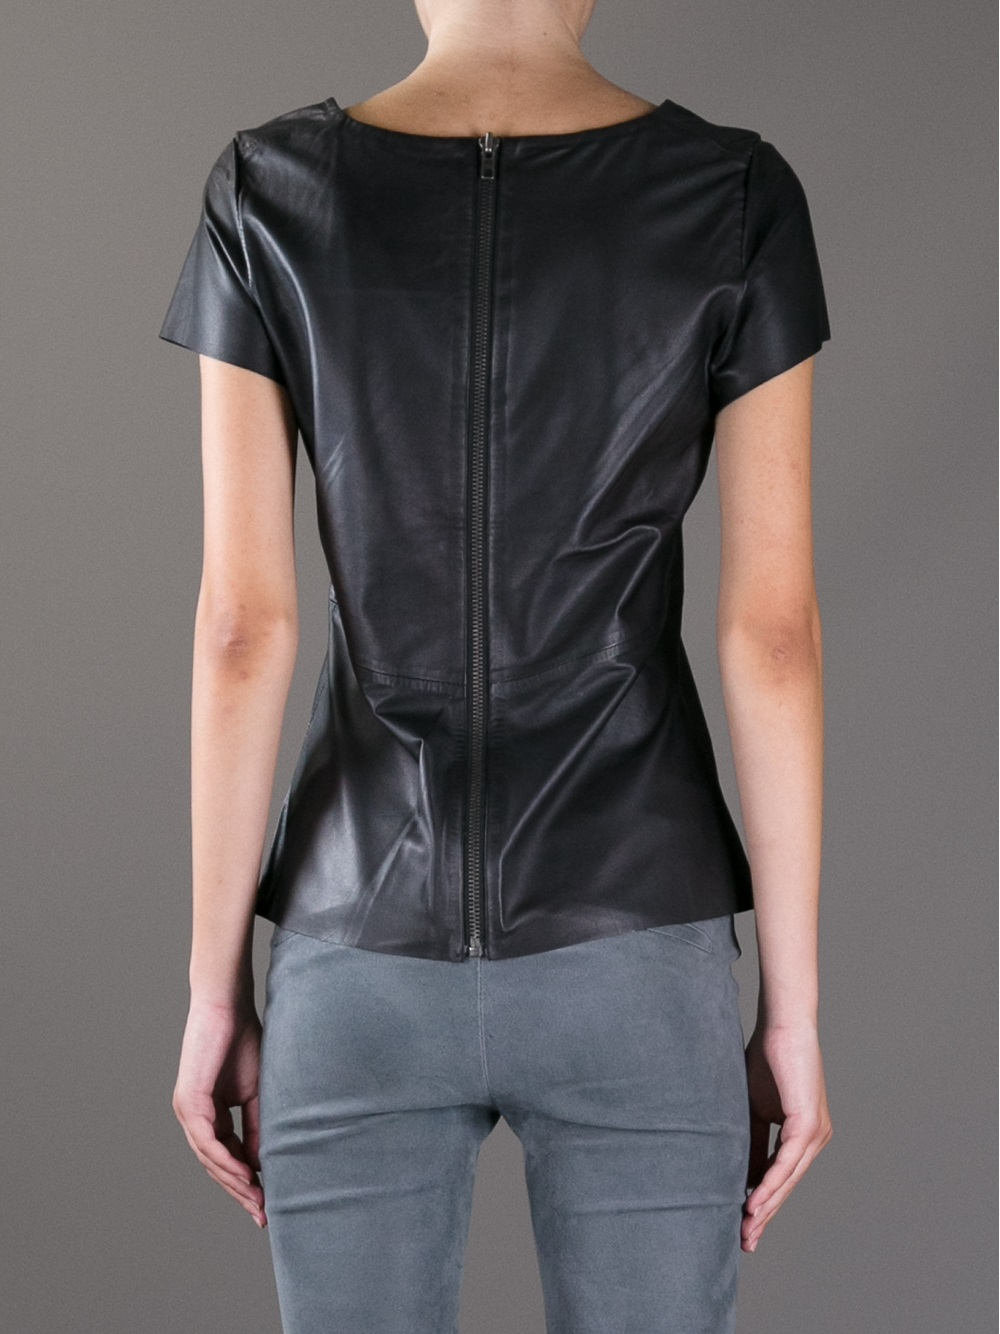 Lyst Muubaa Short Sleeve Leather T Shirt In Black